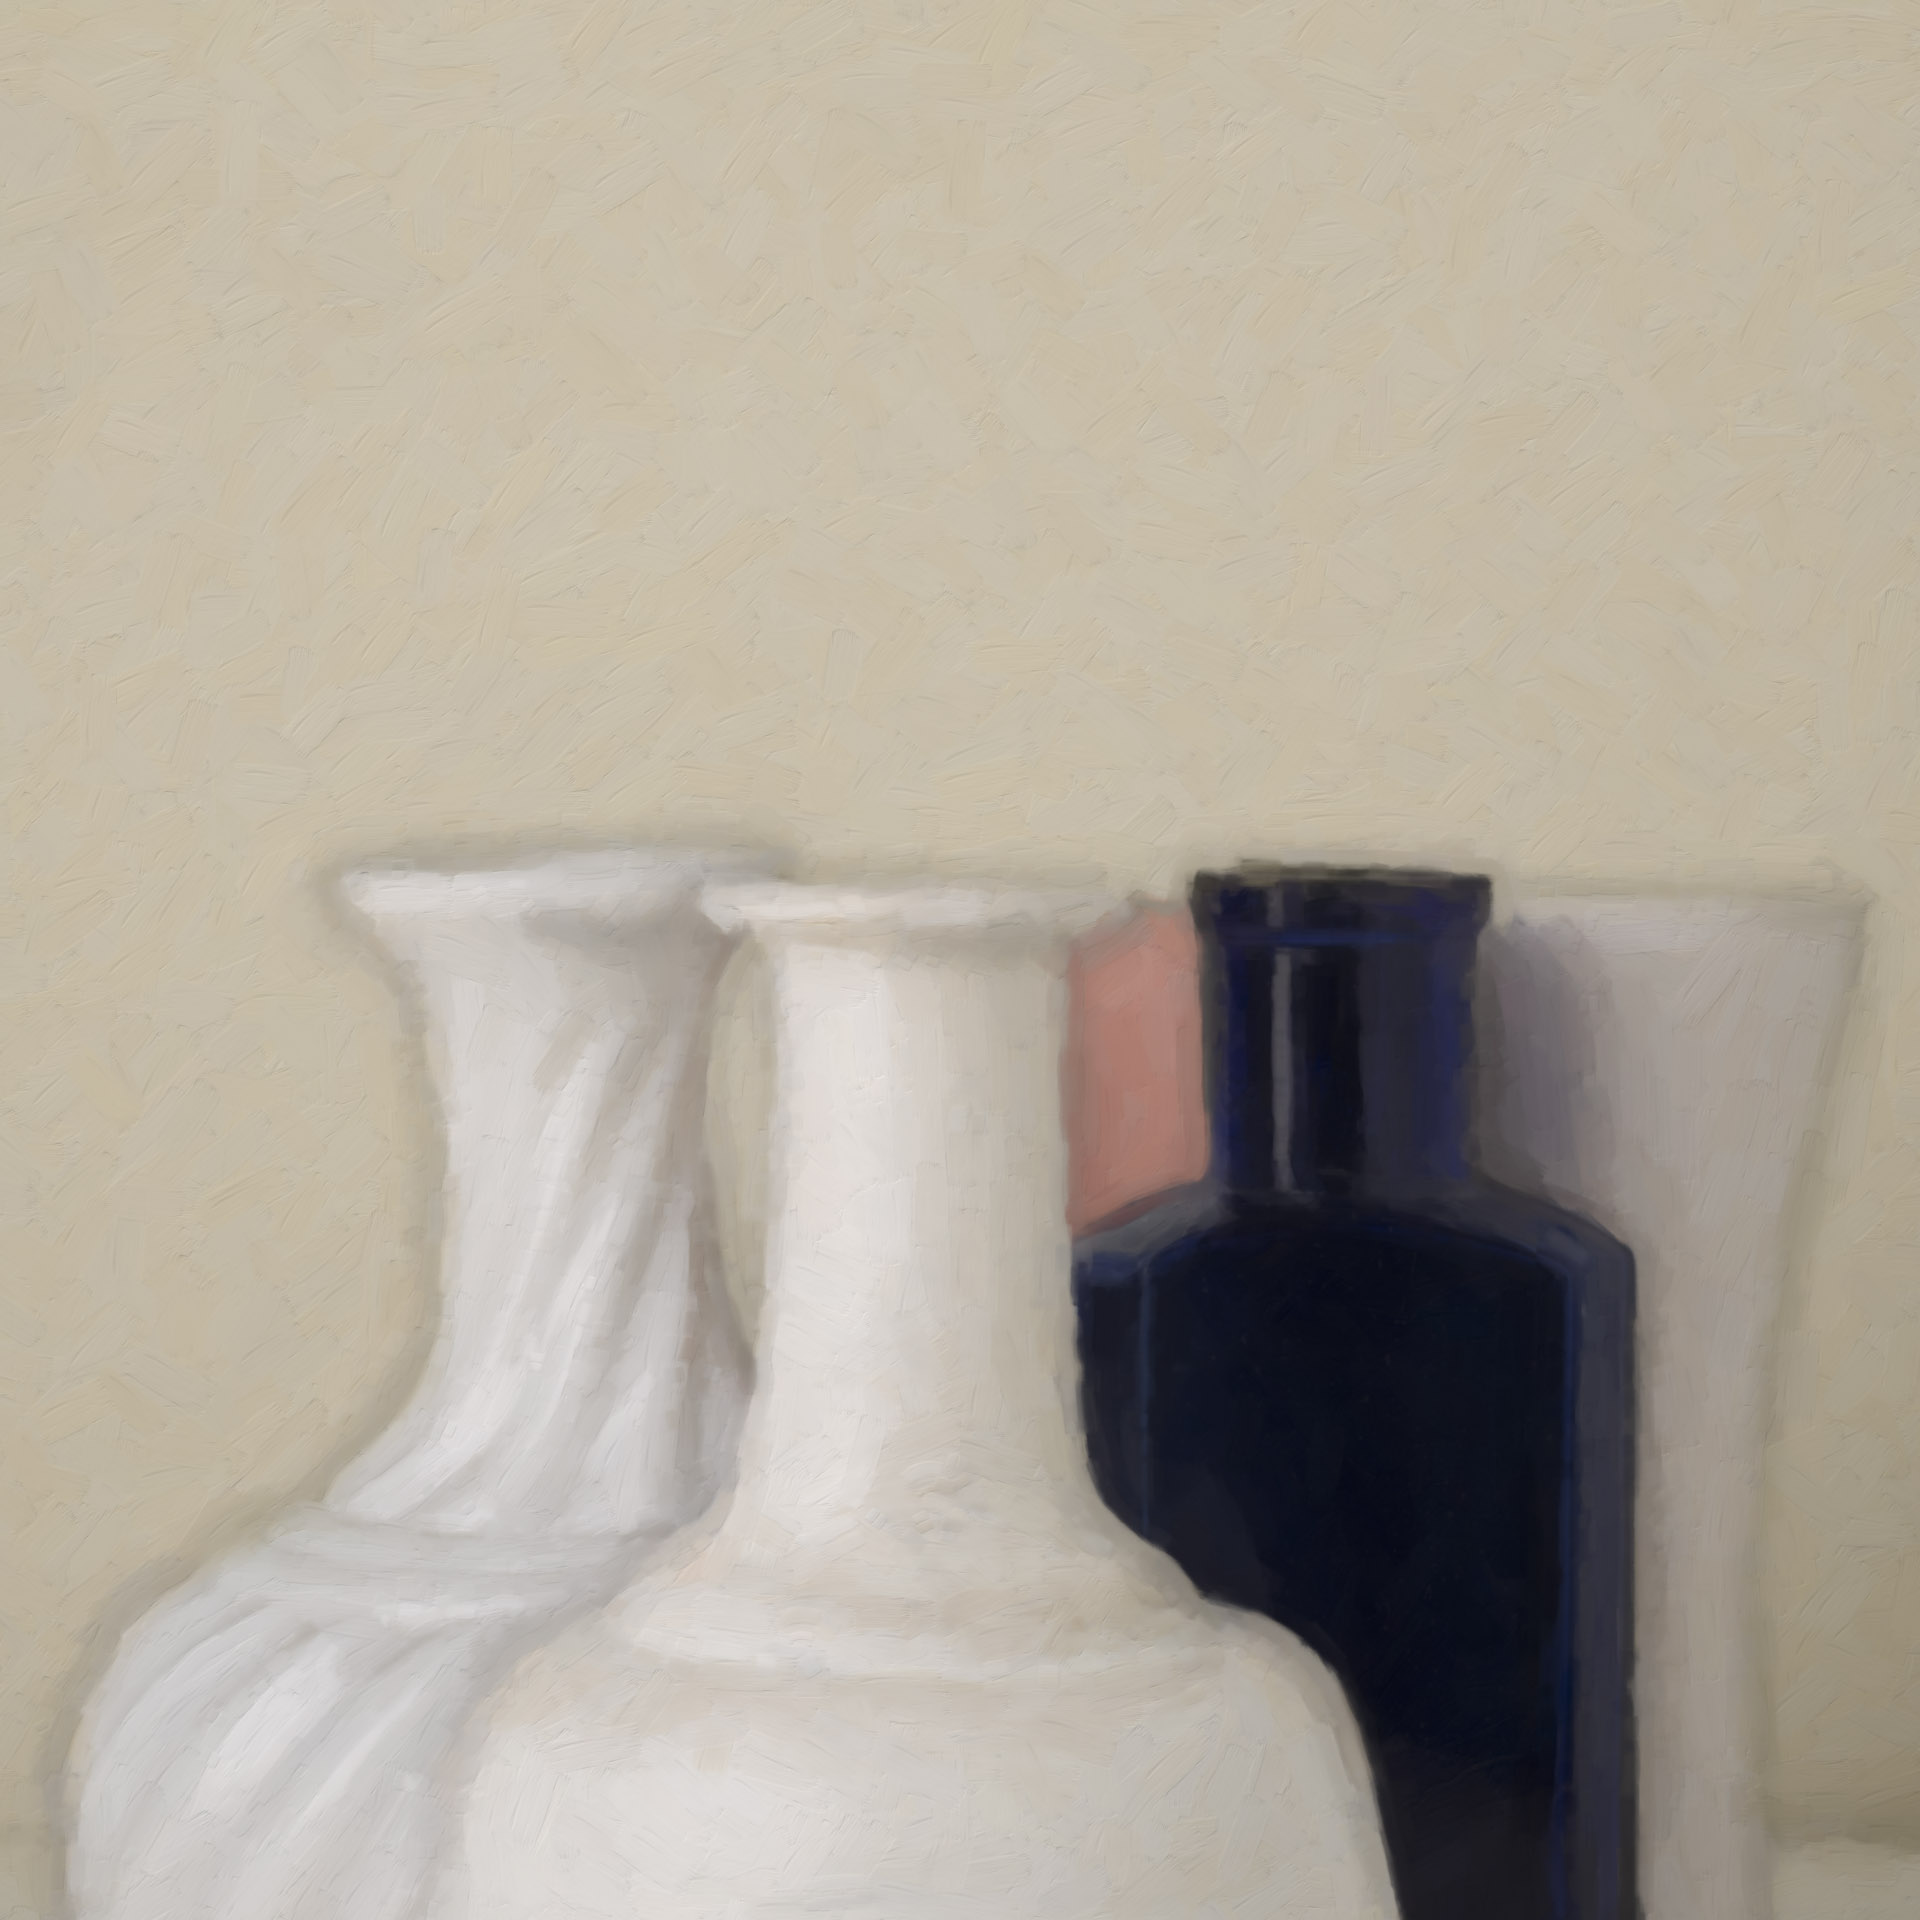 Morandi on the edge 2